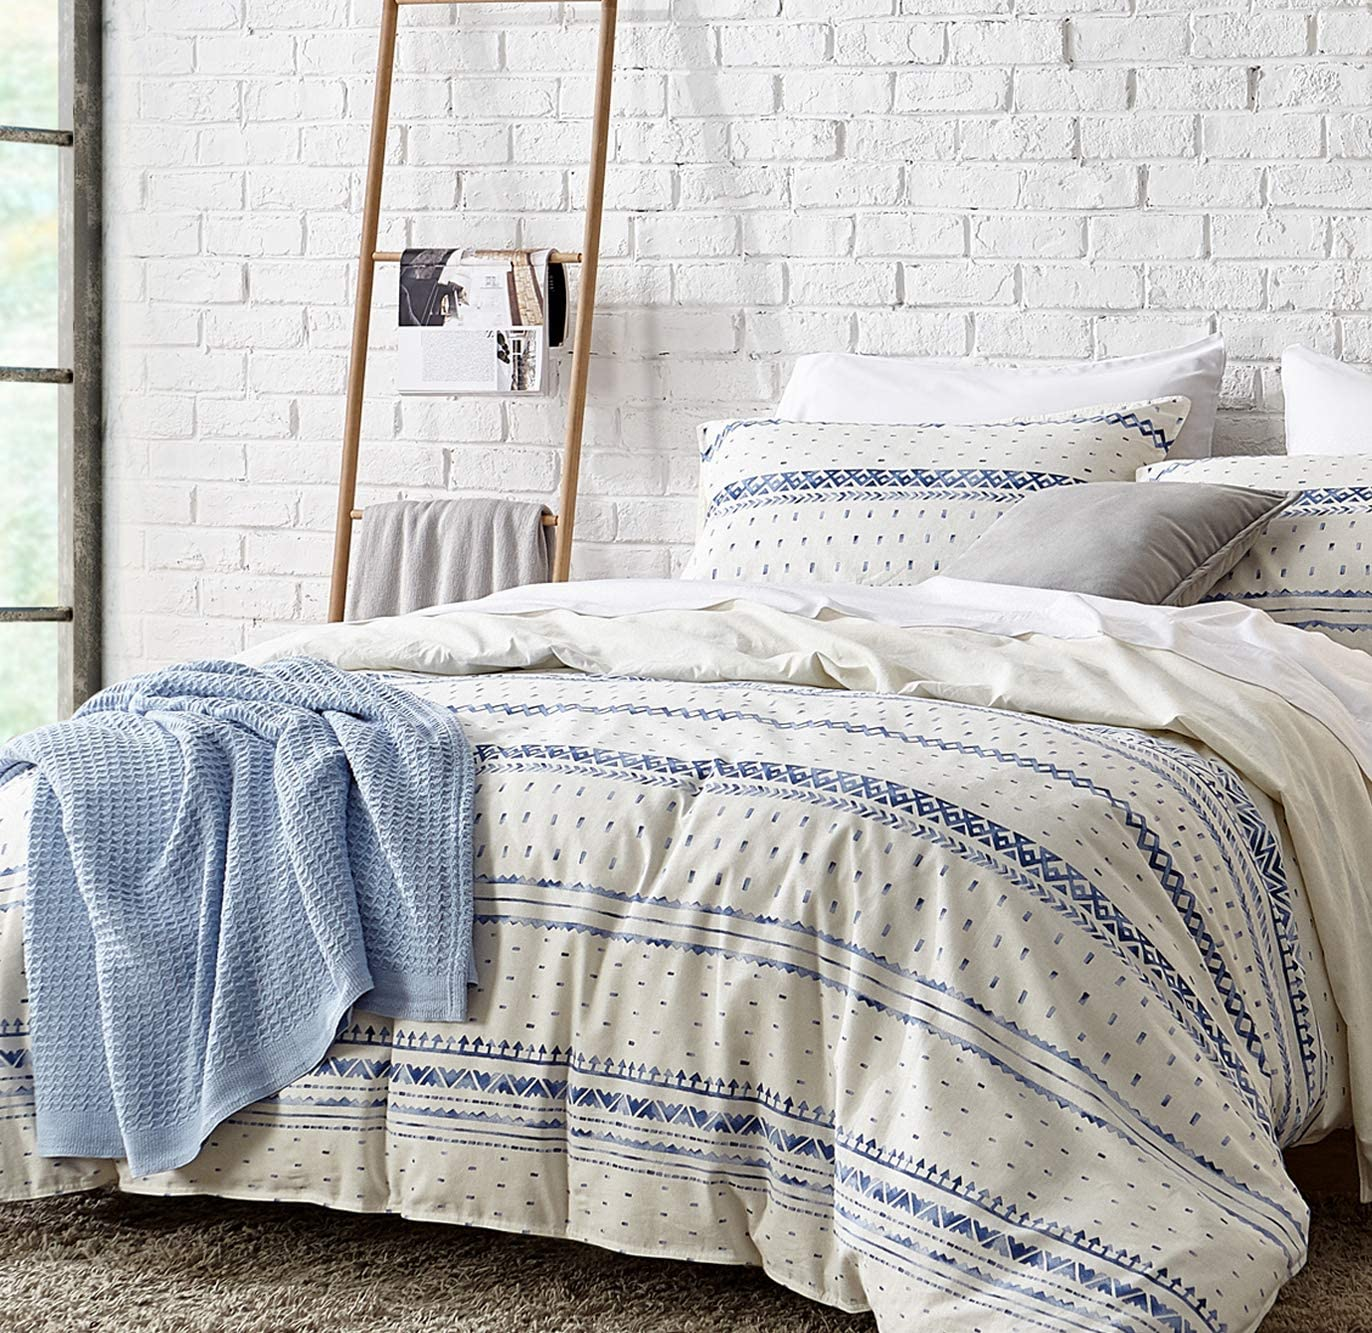 Bedsure 80% Cotton 20% Linen Duvet Cover Set, Washed Cotton Queen Comforter Cover, 3 Pieces Breathable Lightweight Geometric Duvet Cover Sets (Full/Queen, 90x90 inches, White/Blue)